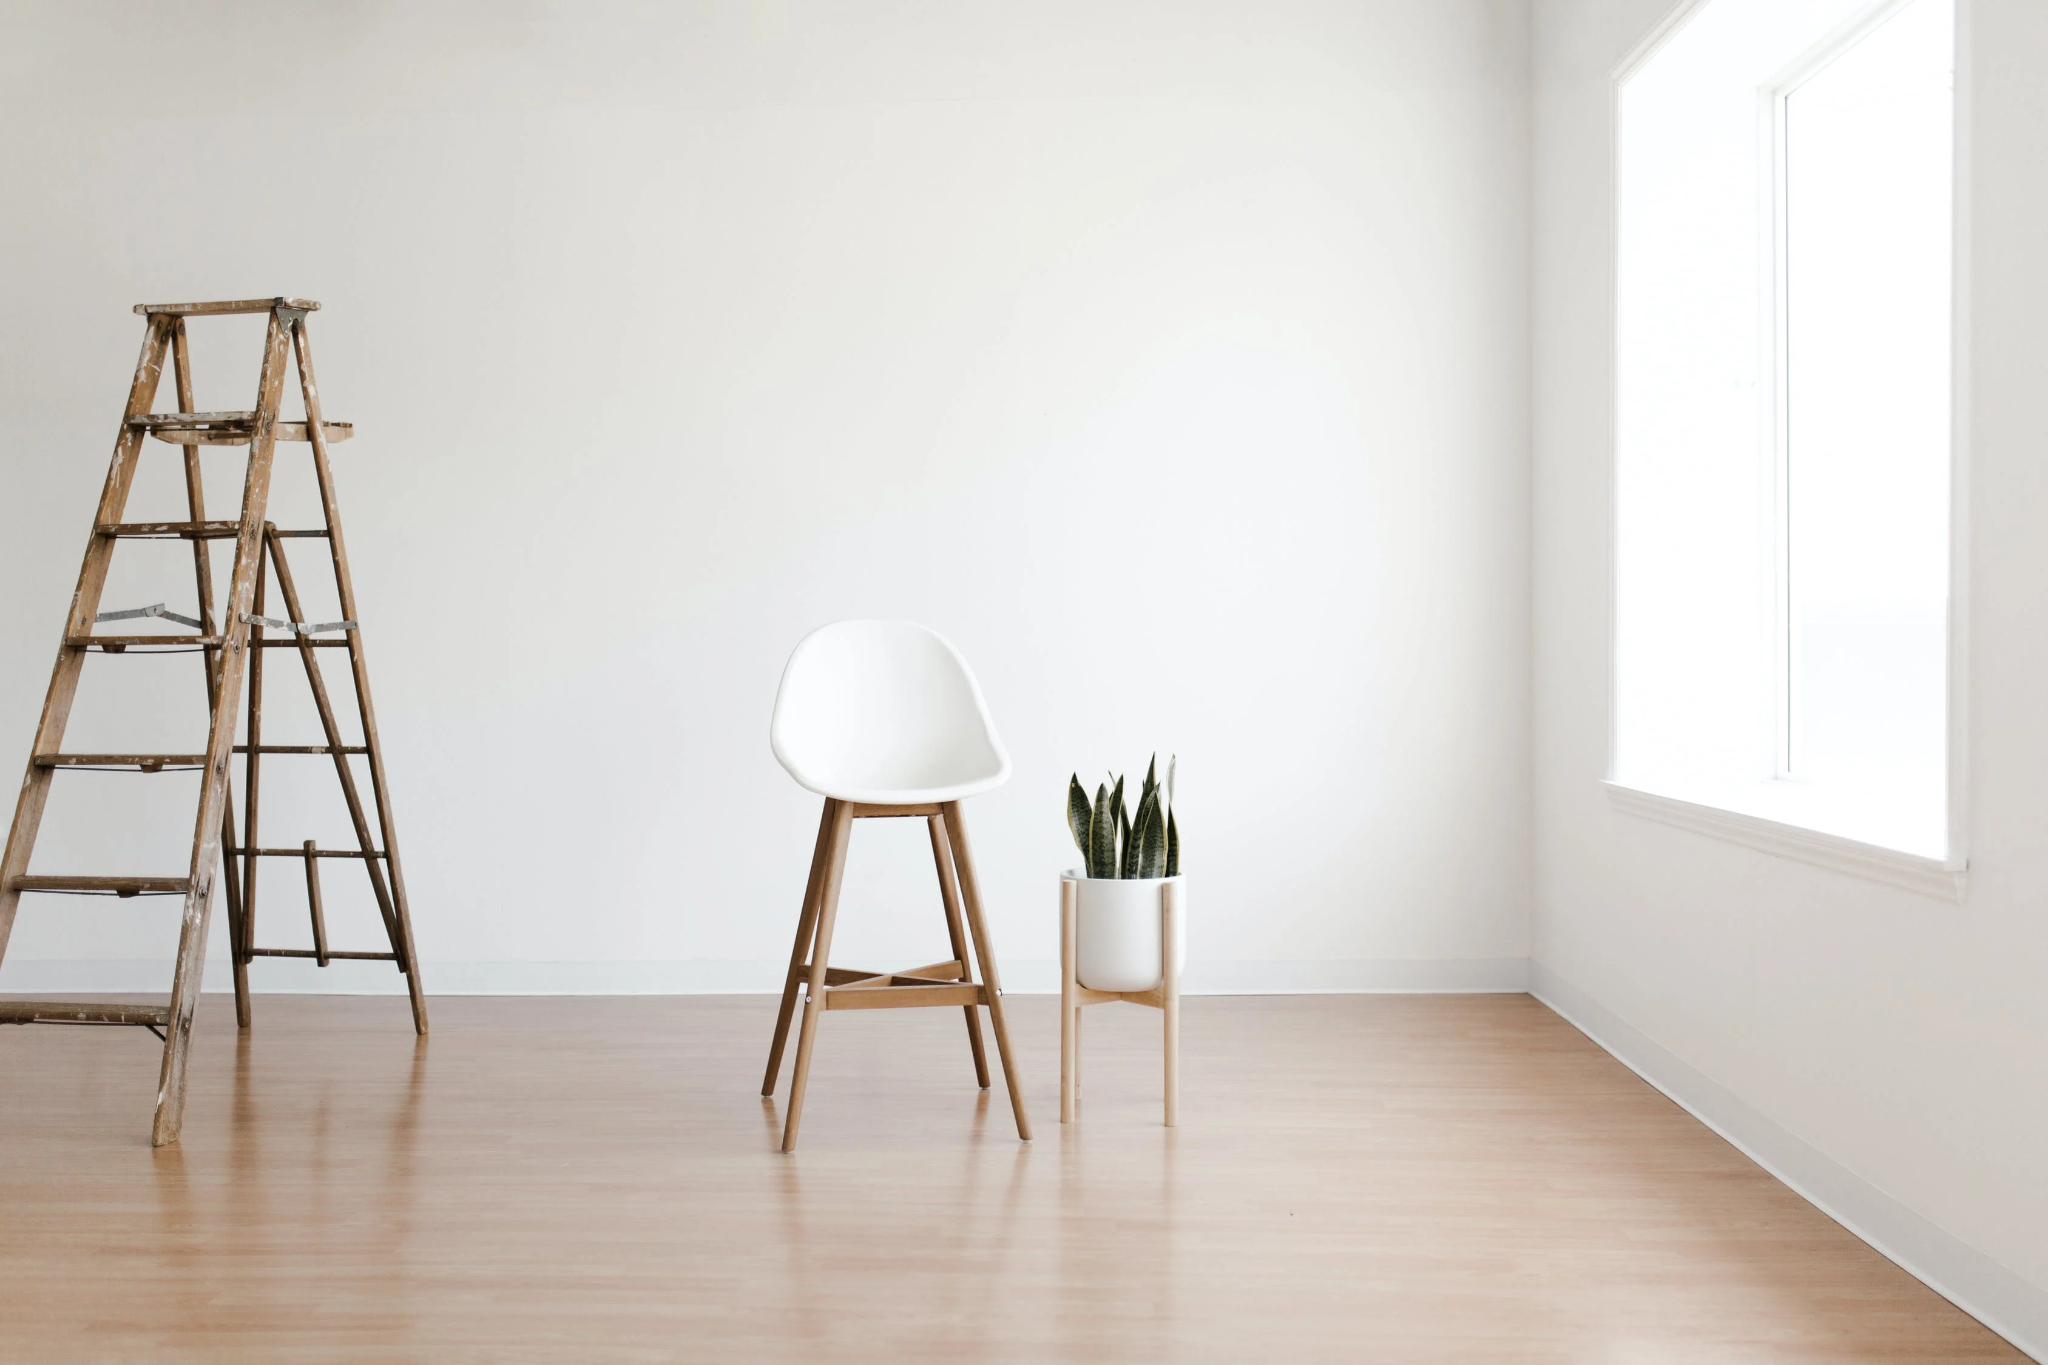 Empty room with chair, potted plant, ladder, and light wooden flooring